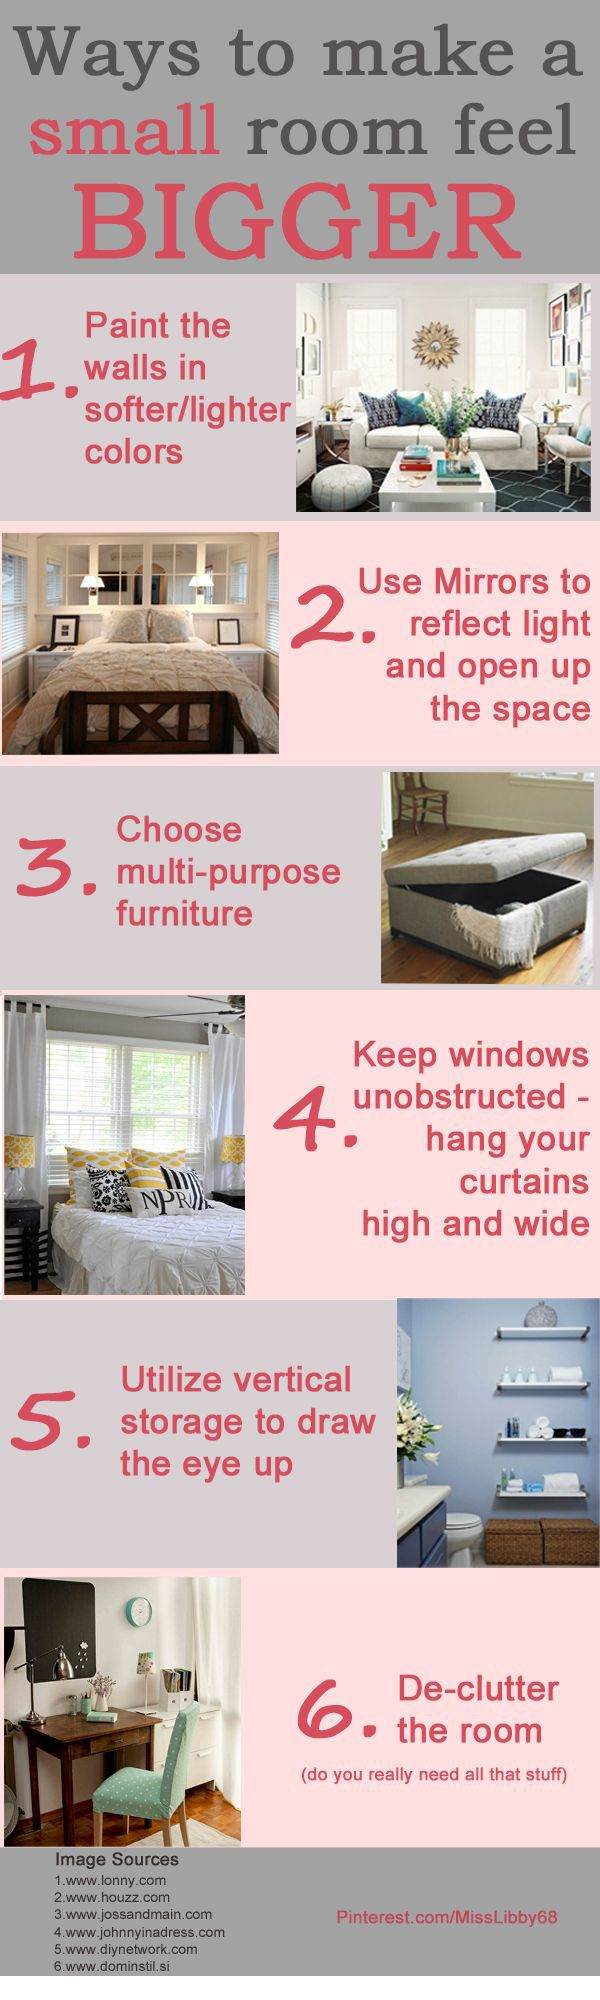 20 bedroom organization tips to make the most of a small space - Ways To Decorate A Bedroom